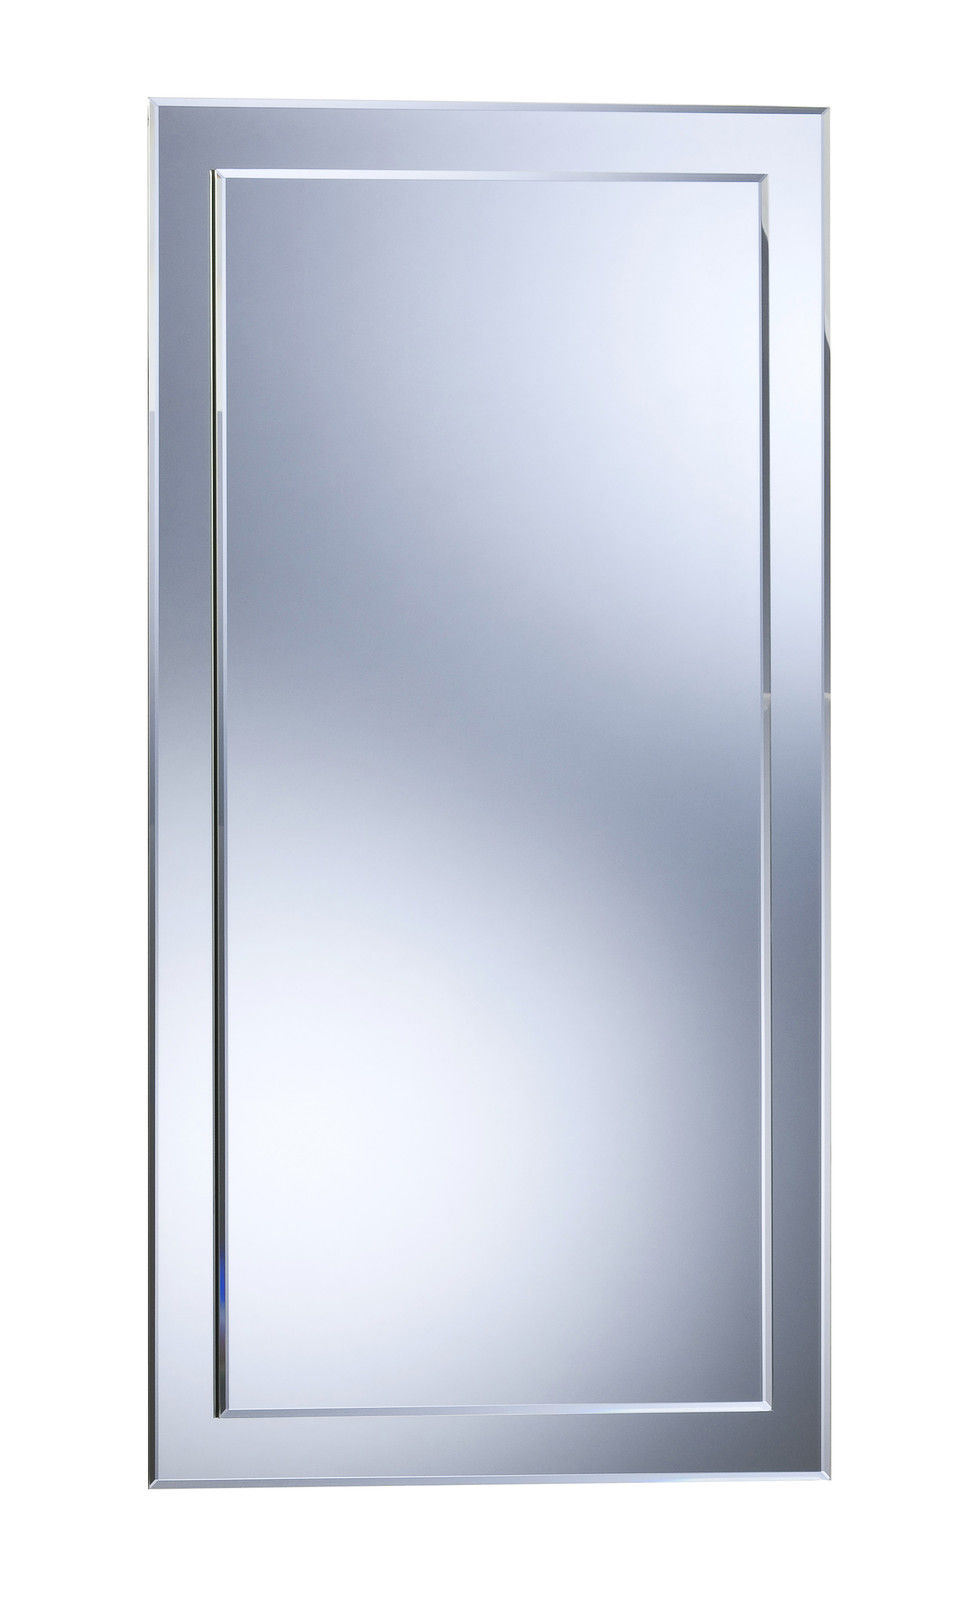 Bathroom mirror elegant double layer rectangular hang both ways wall plain ebay Neue design bathroom mirror